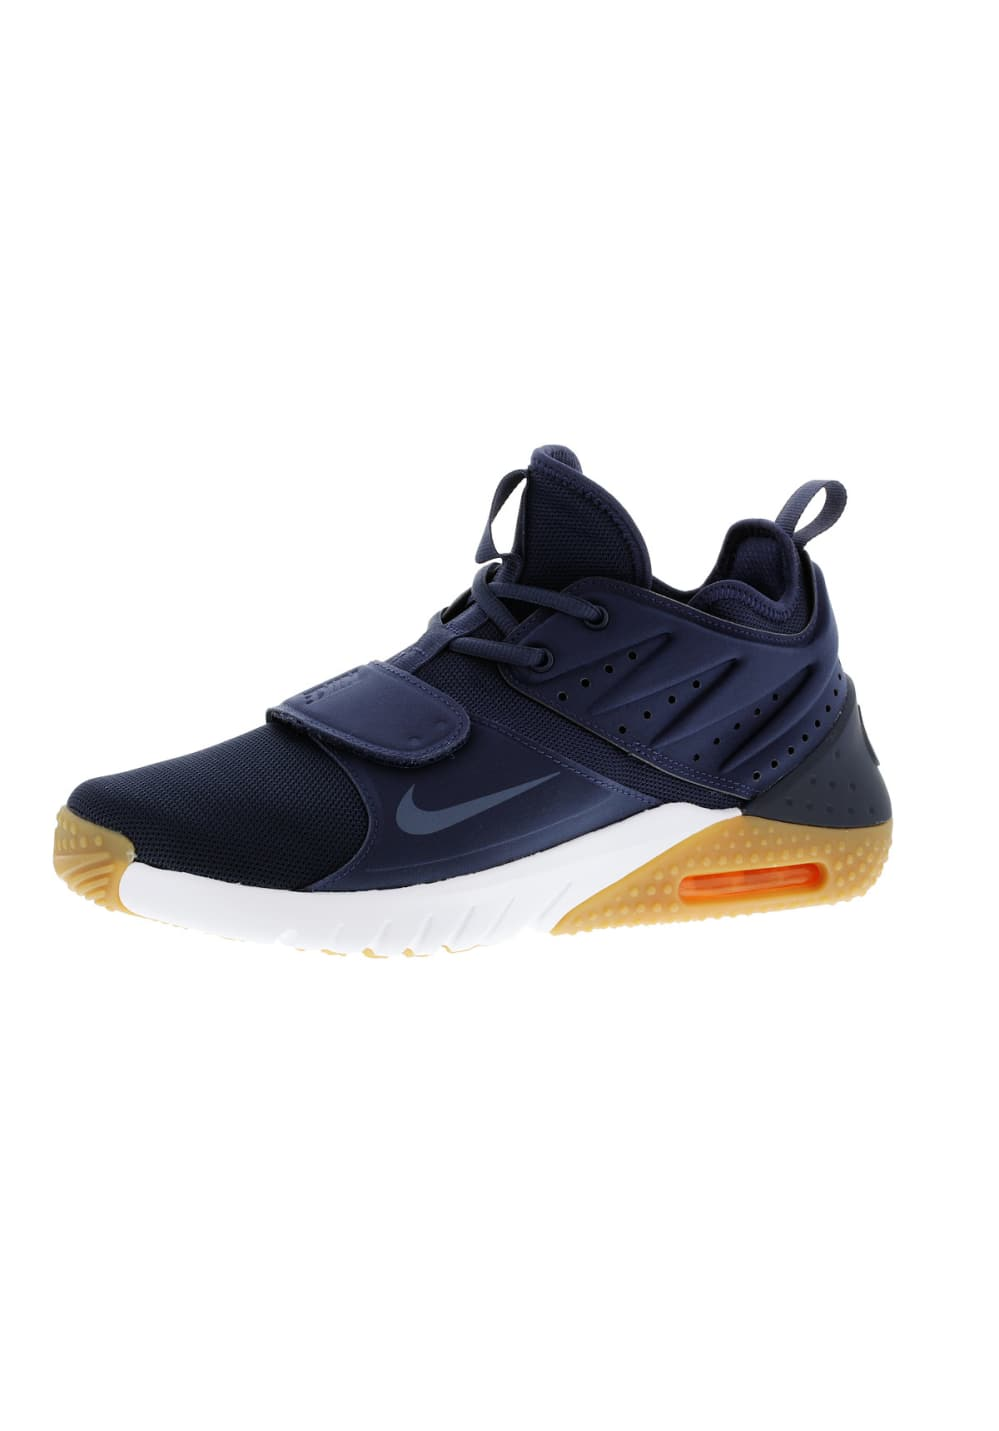 differently b17fc bf6a2 Next. -70%. Nike. Air Max Trainer 1 ...